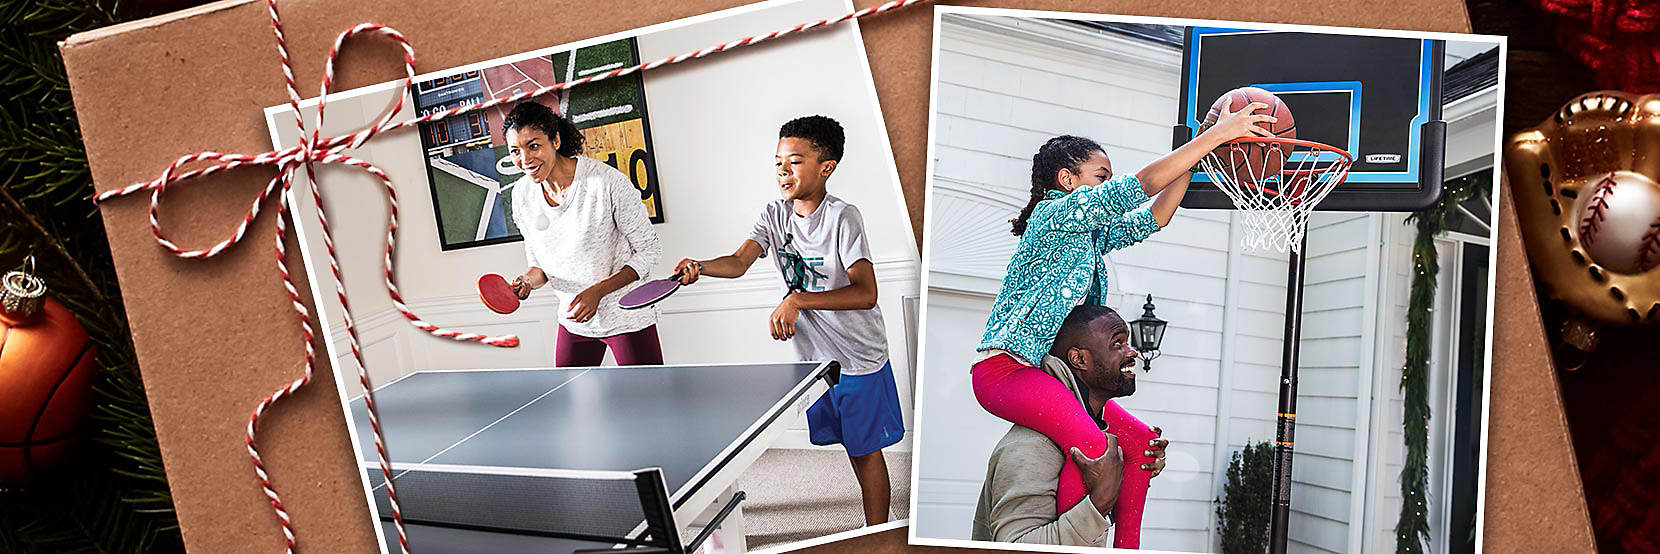 Two photographs on a gift box showing a child and adult playing table tennis and basketball.